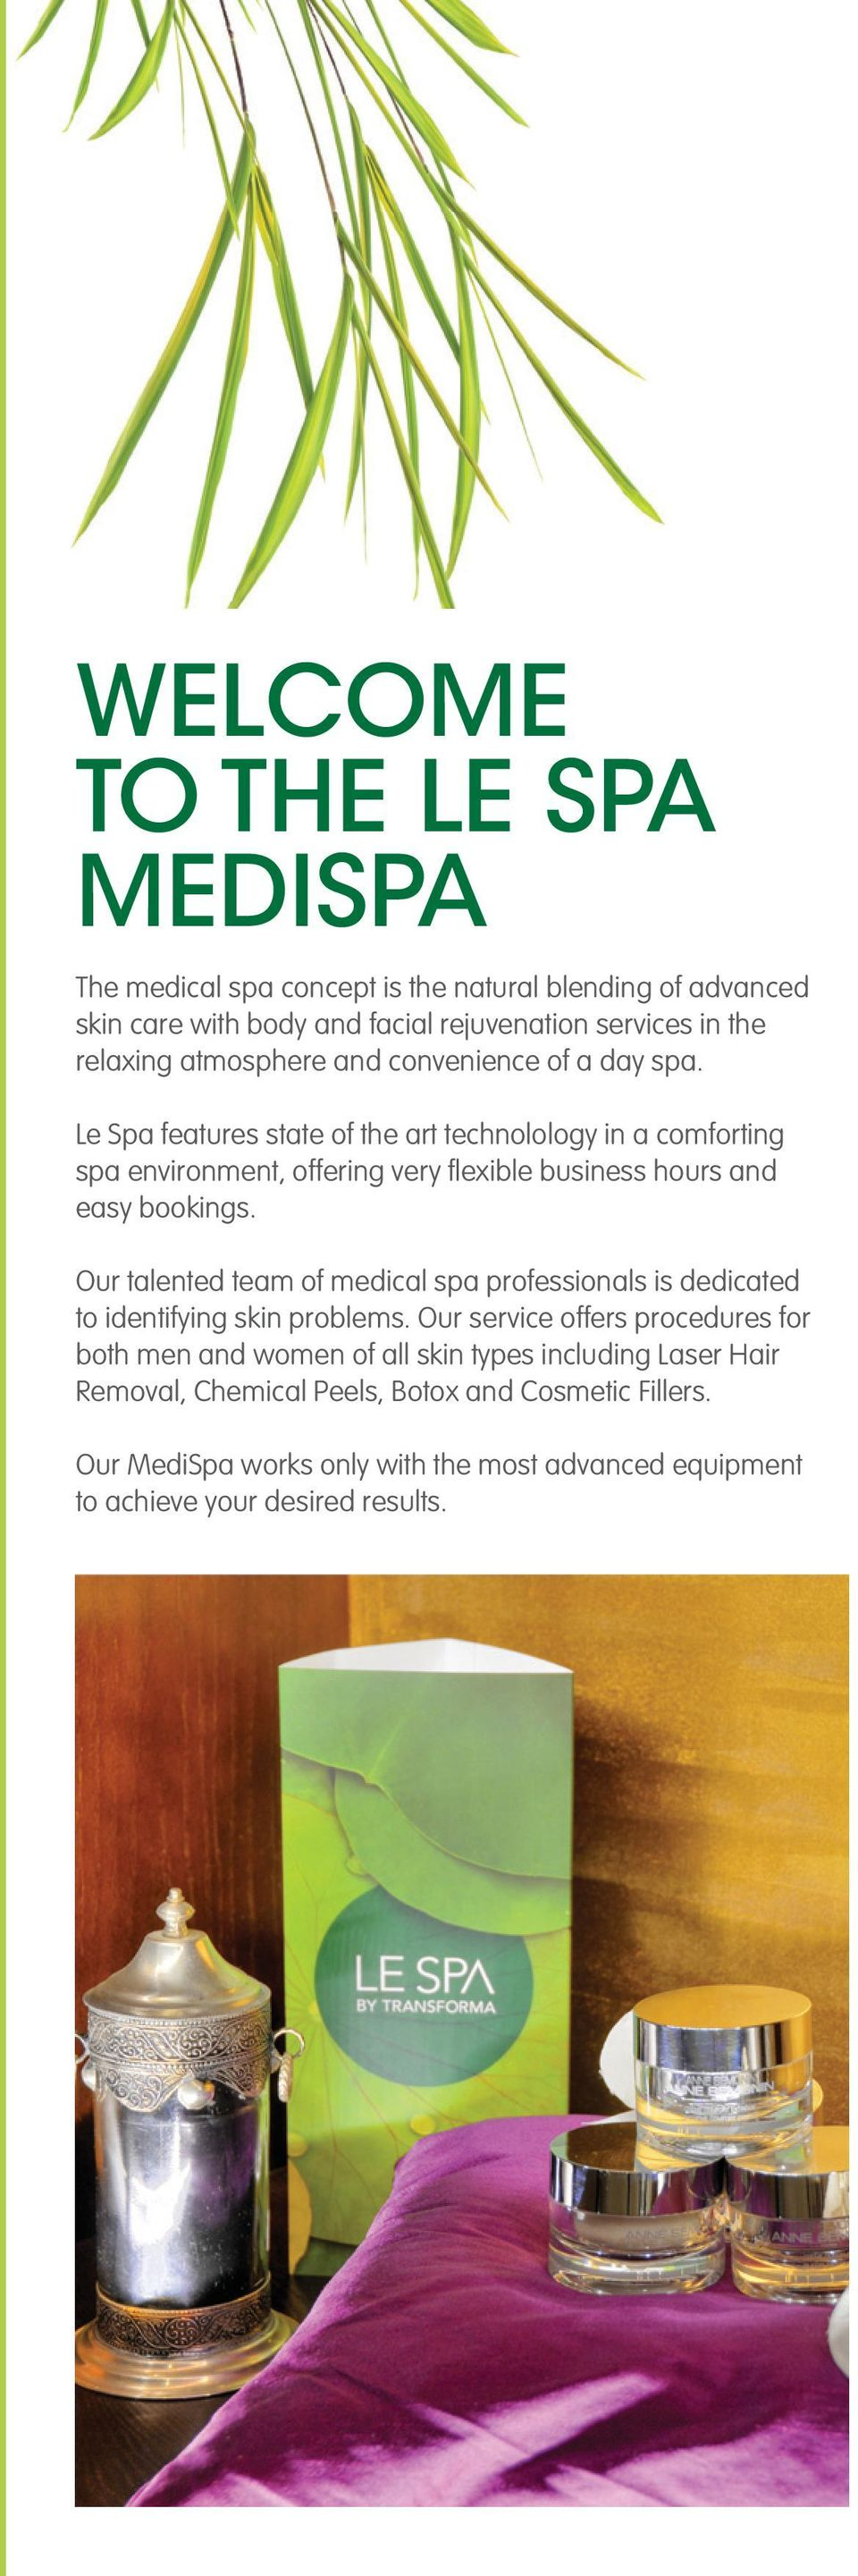 To The Le Spa Le Spa Features State Of The Art Technolology In A Comforting Spa Environment Offering Very Flexible Business Hours And Easy Bookings Pdf Free Download